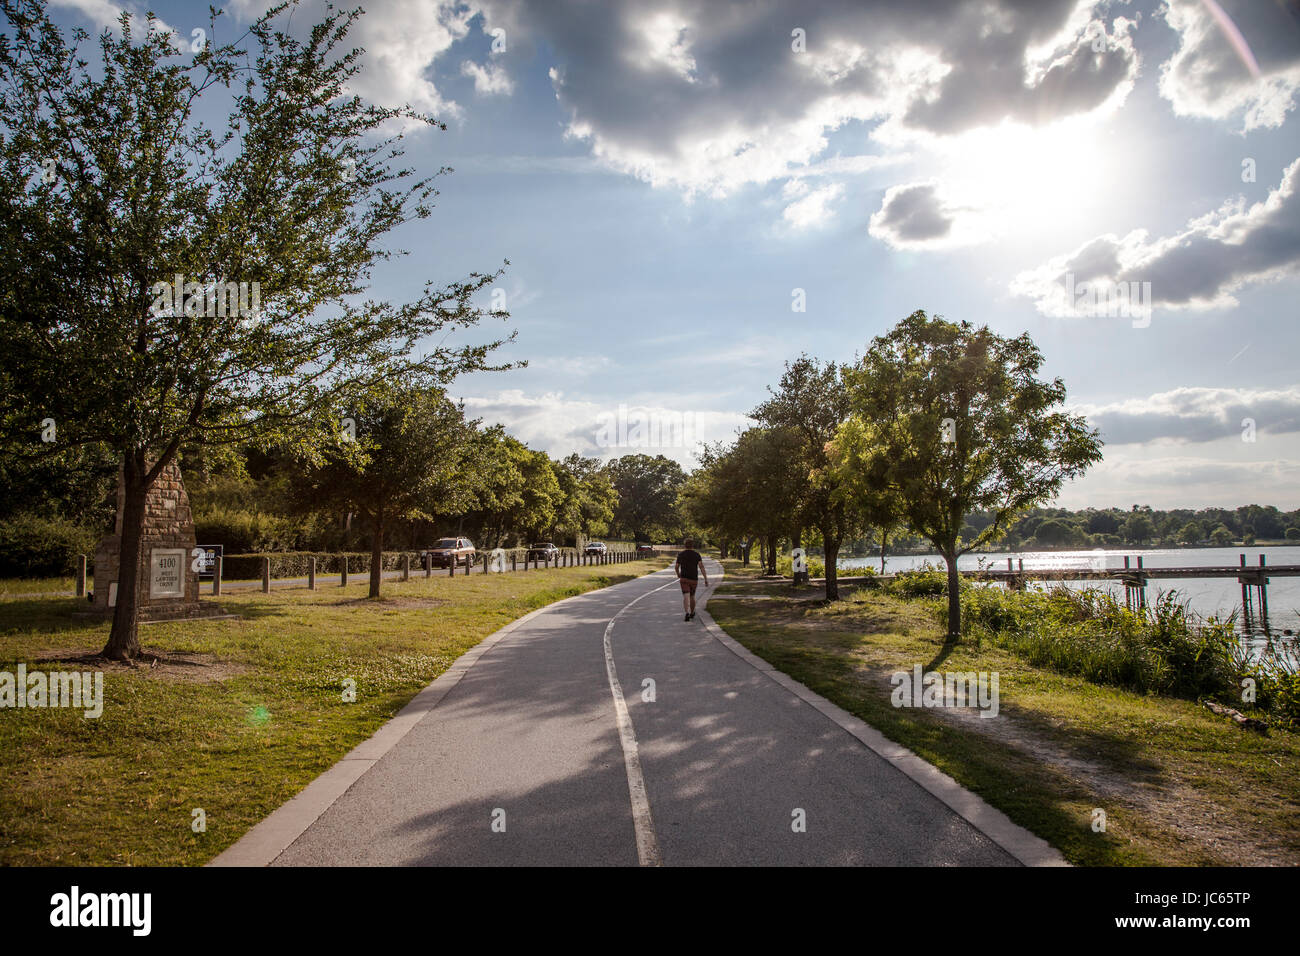 White Rock Lake in Dallas Texas - Stock Image